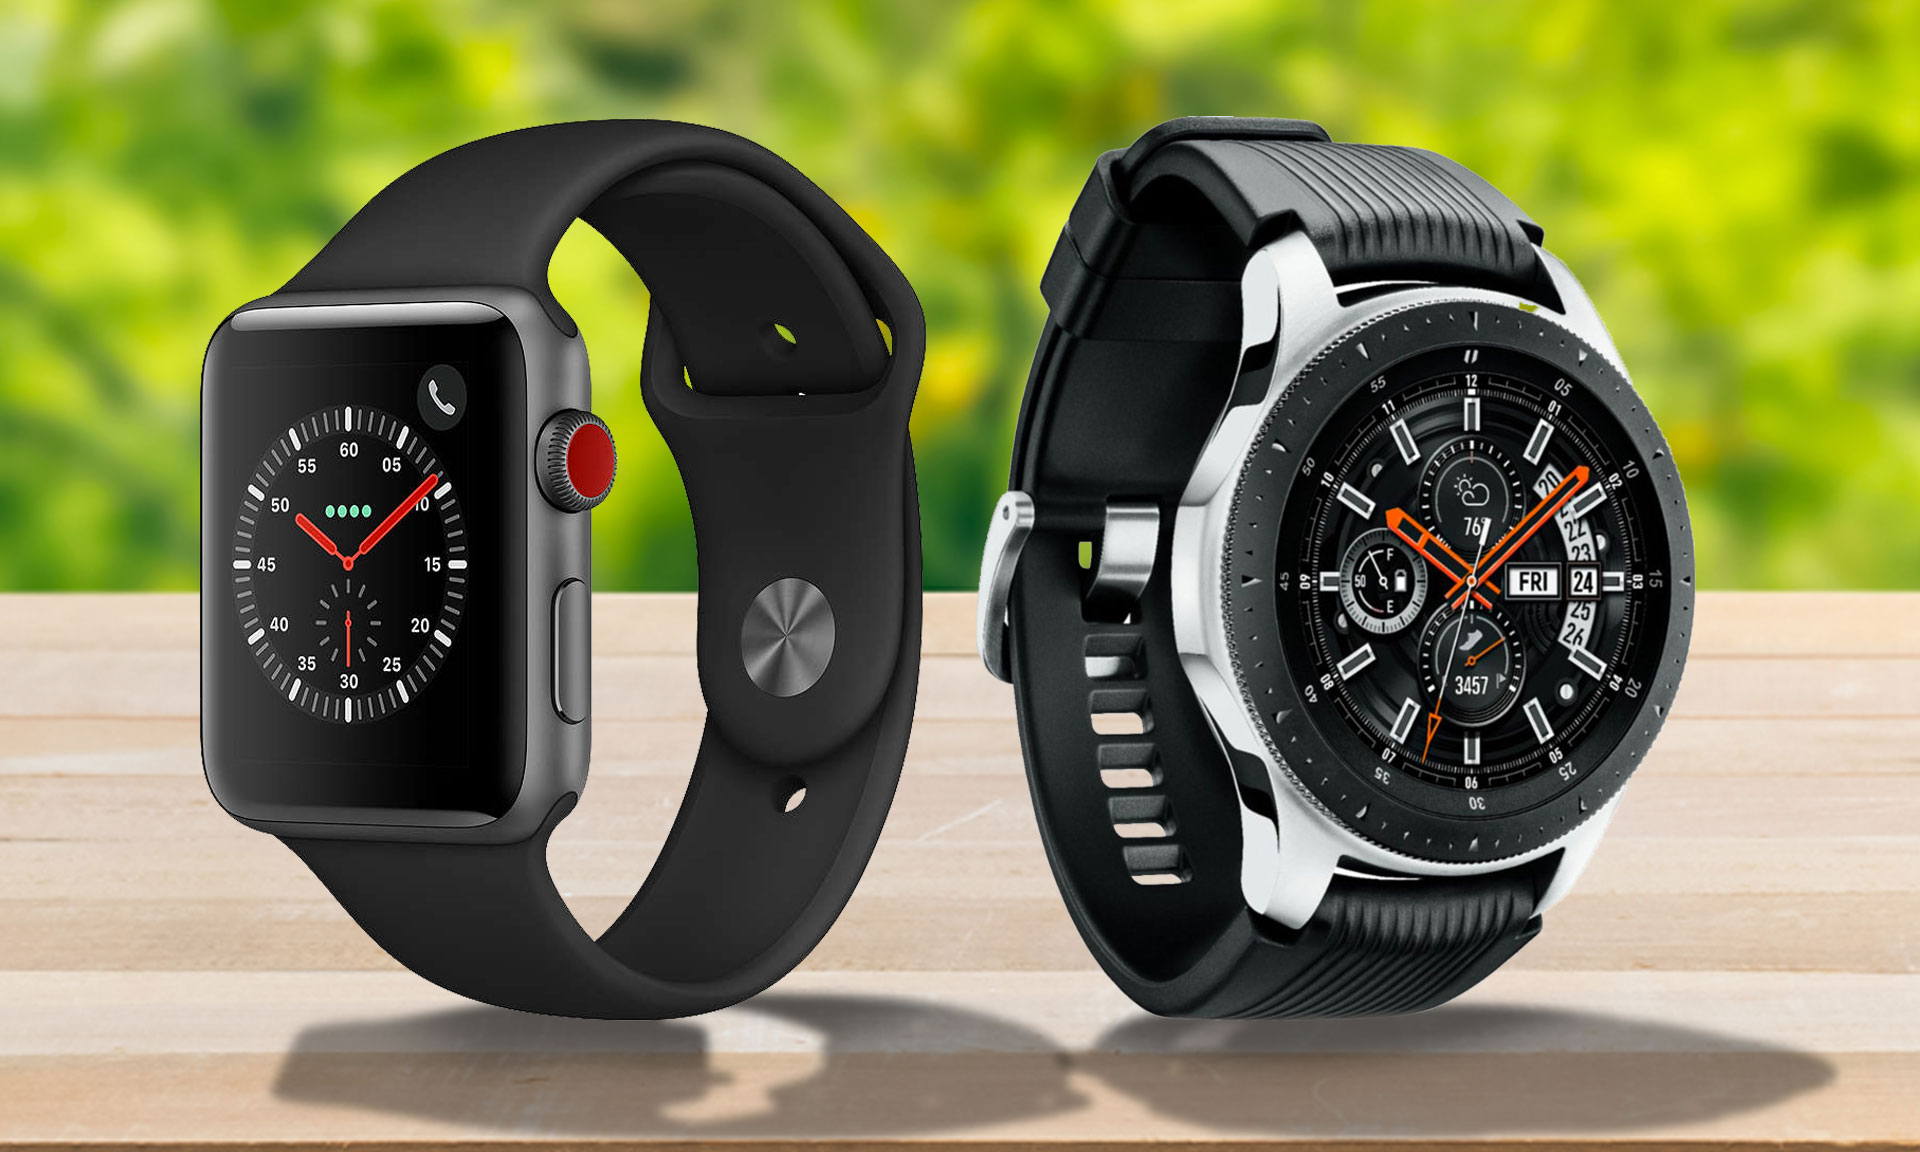 409d410a4a9cd Samsung Galaxy Watch vs Apple Watch vs Gear S3 – which smartwatch should I  buy